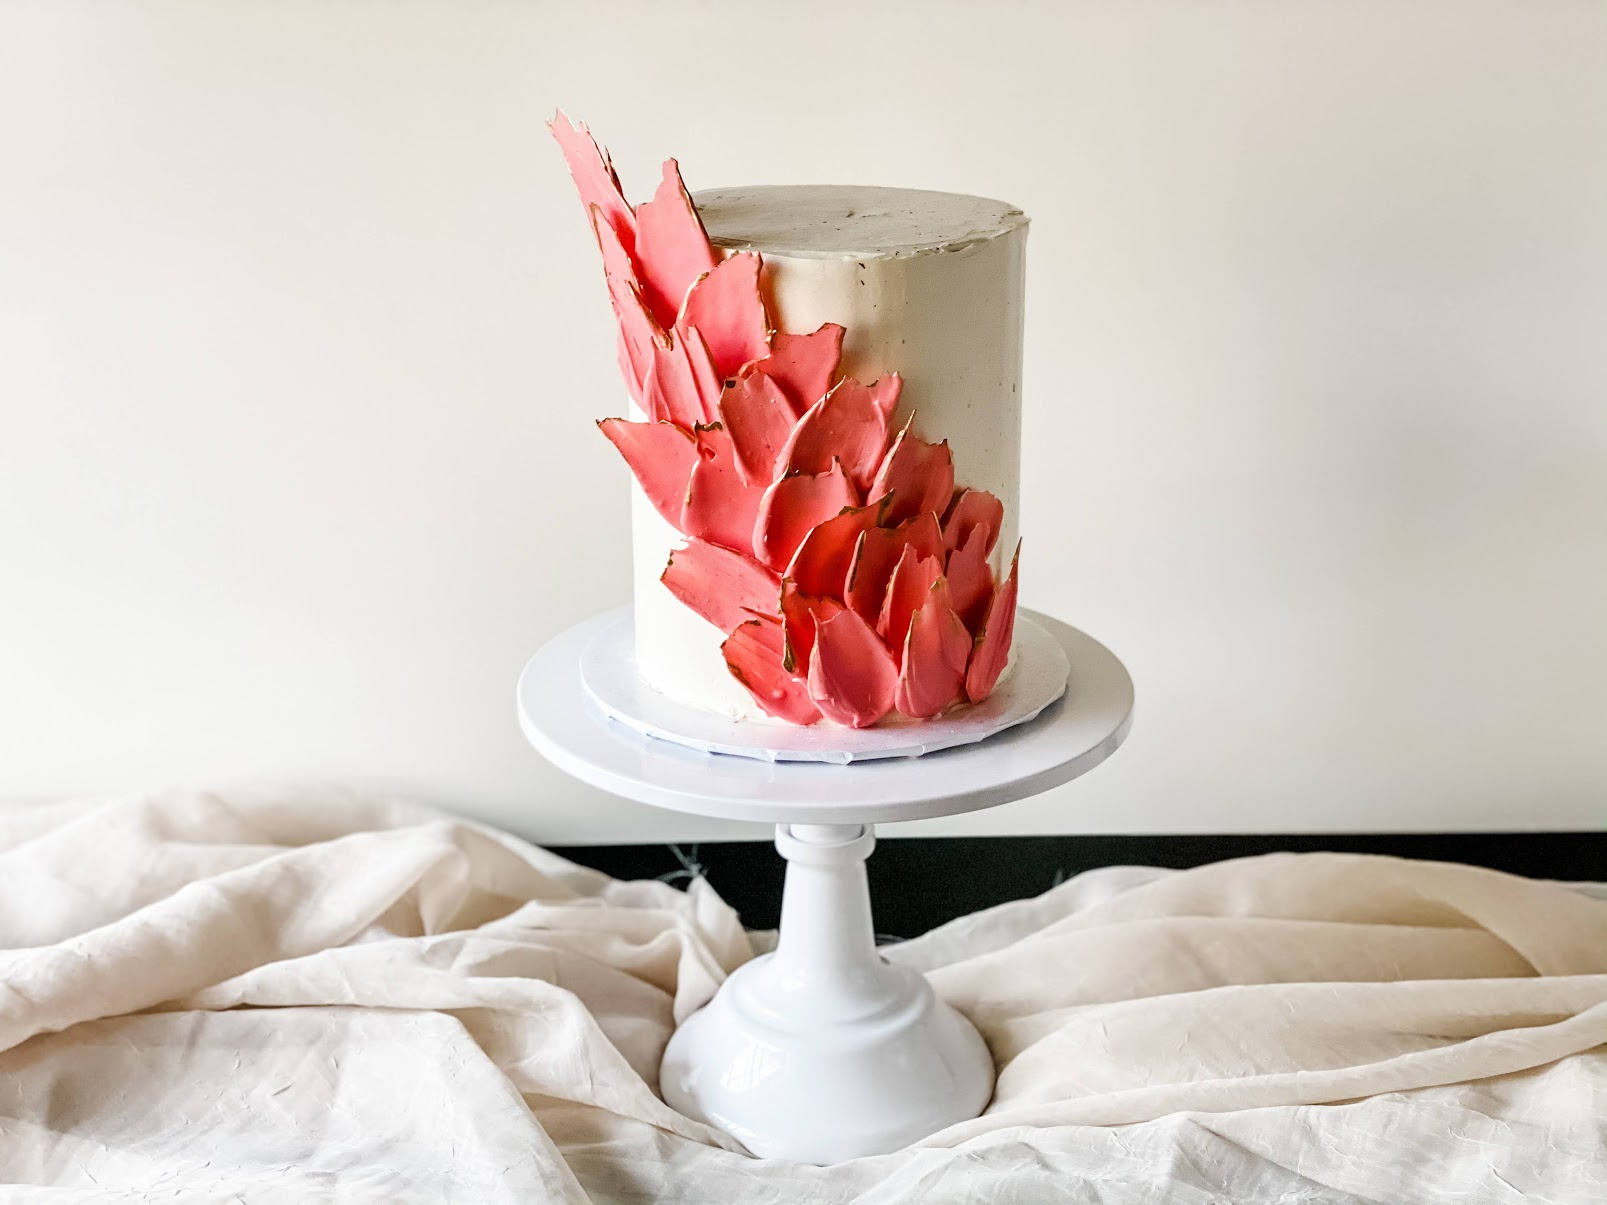 Learning how to make a wedding cake is a valuable skill. For a modern design, we are going for the clean, sleek, elegant look with white buttercream, smooth sides, flecks of edible gold, and coral-colored white chocolate feathers. #xokatierosario #katierosariocakes #smallweddingcake #modernweddingcake #chocolatefeathers #weddingcake